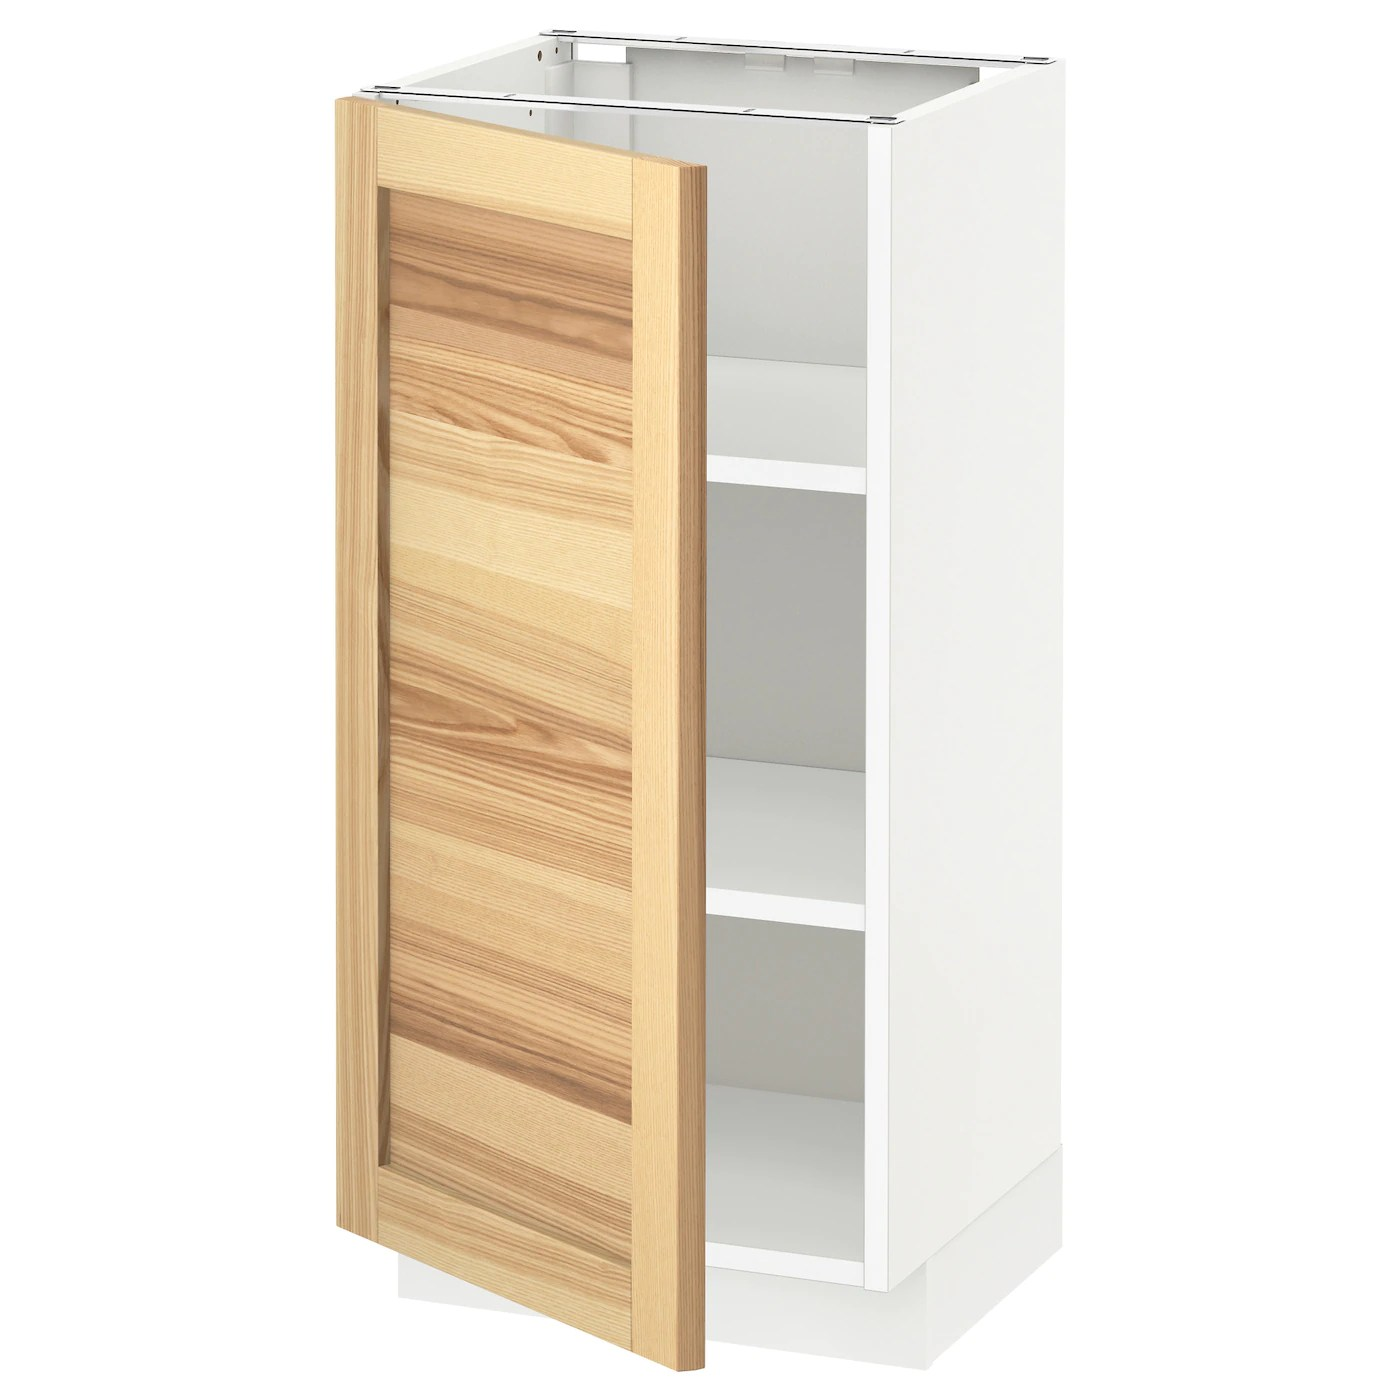 Ikea Küche Torhamn Metod Base Cabinet With Shelves White Torhamn Ash 40 X 37